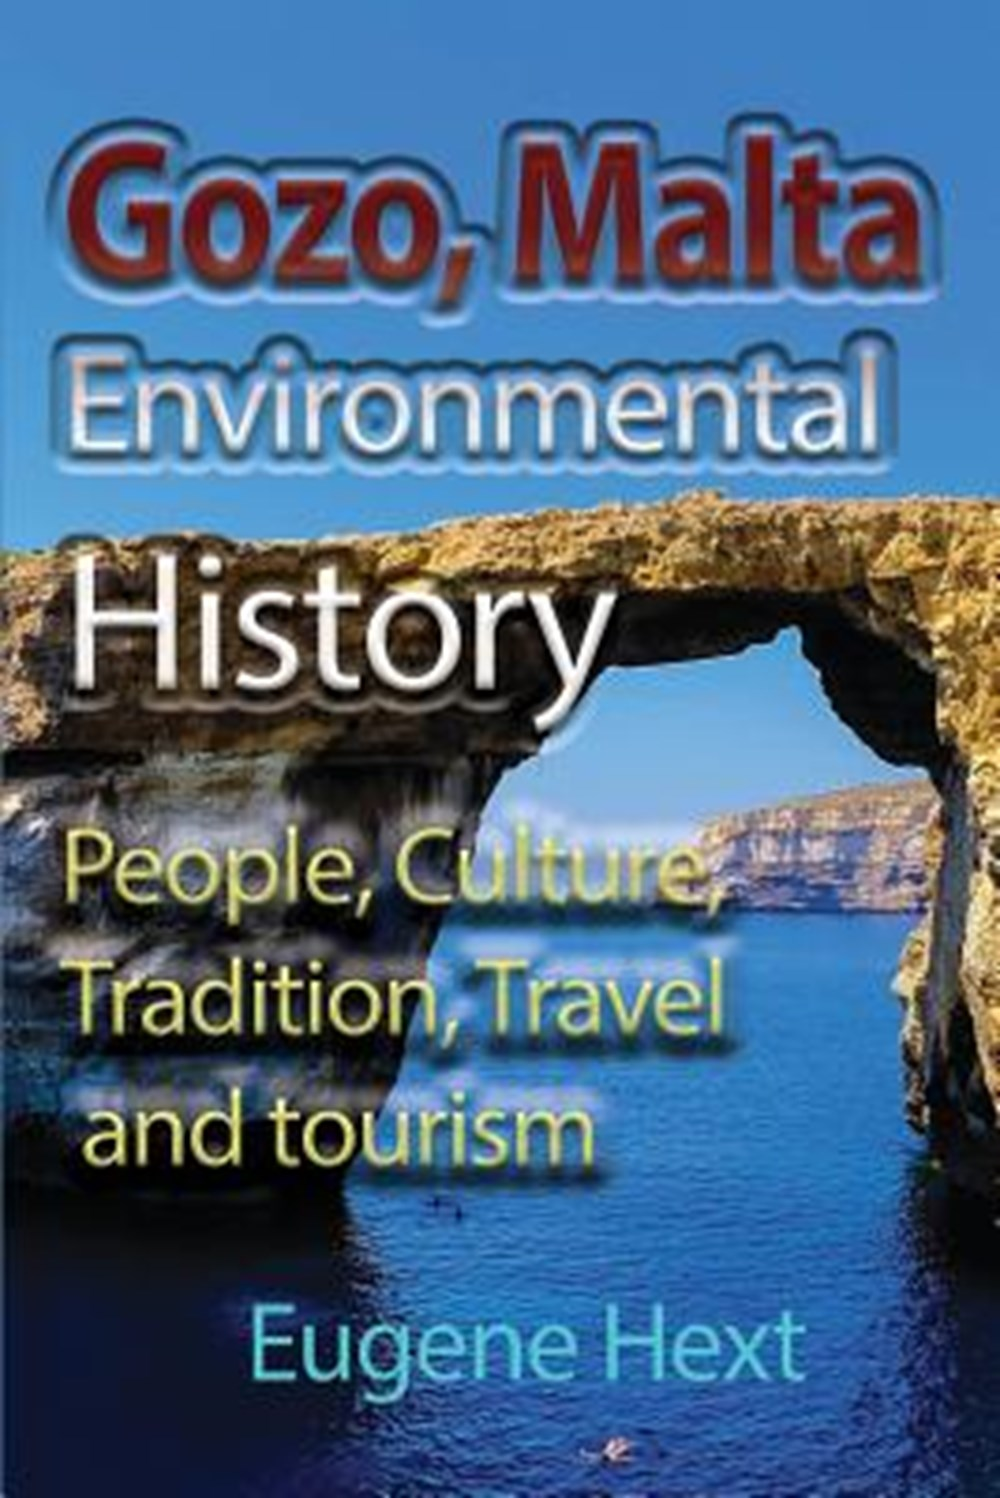 Gozo, Malta Environmental History People, Culture, Tradition, Travel and tourism